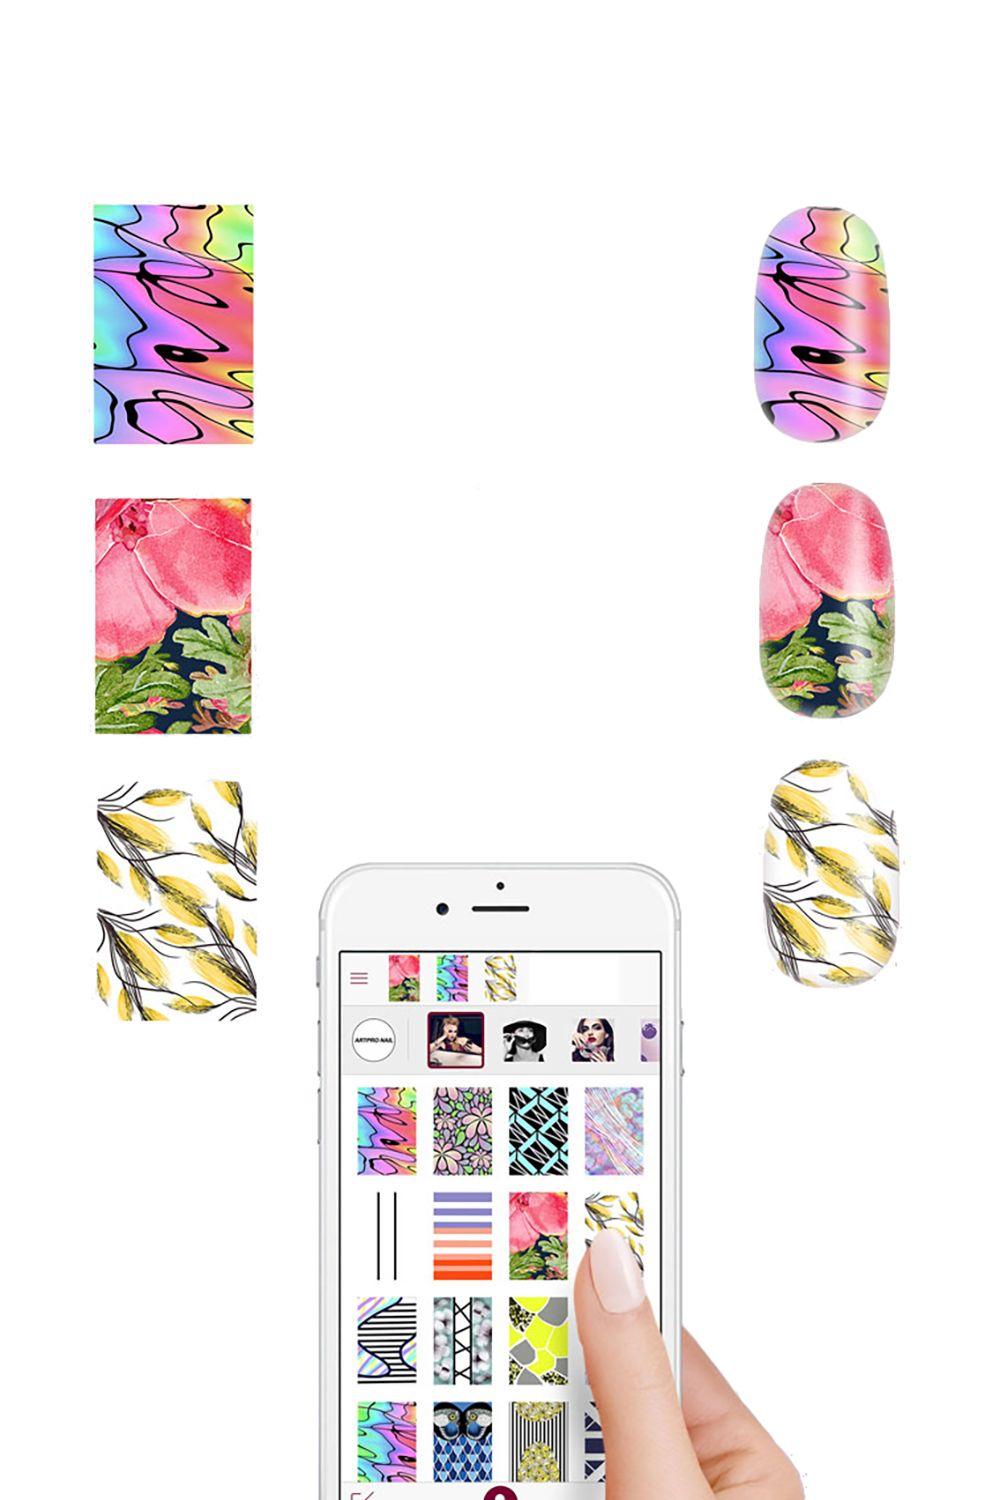 "<p>The first-ever fully controlled-via-app nail printer lets you design any nail art that your heart could possibly desire. Choose from their selection or upload from your camera roll and print.<span class=""redactor-invisible-space"" data-verified=""redactor"" data-redactor-tag=""span"" data-redactor-class=""redactor-invisible-space""></span> Go trendy with their soon-to-be-announced designer collabs or full-on narcissist<span class=""redactor-invisible-space"" data-verified=""redactor"" data-redactor-tag=""span"" data-redactor-class=""redactor-invisible-space""> </span>with a selfie on every nail. It'll even work on any type of nail, from natural to acrylic.</p><p>$1,225, <a href=""http://www.art-pronail.co.uk"" data-tracking-id=""recirc-text-link"">ArtPro Nail</a></p>"